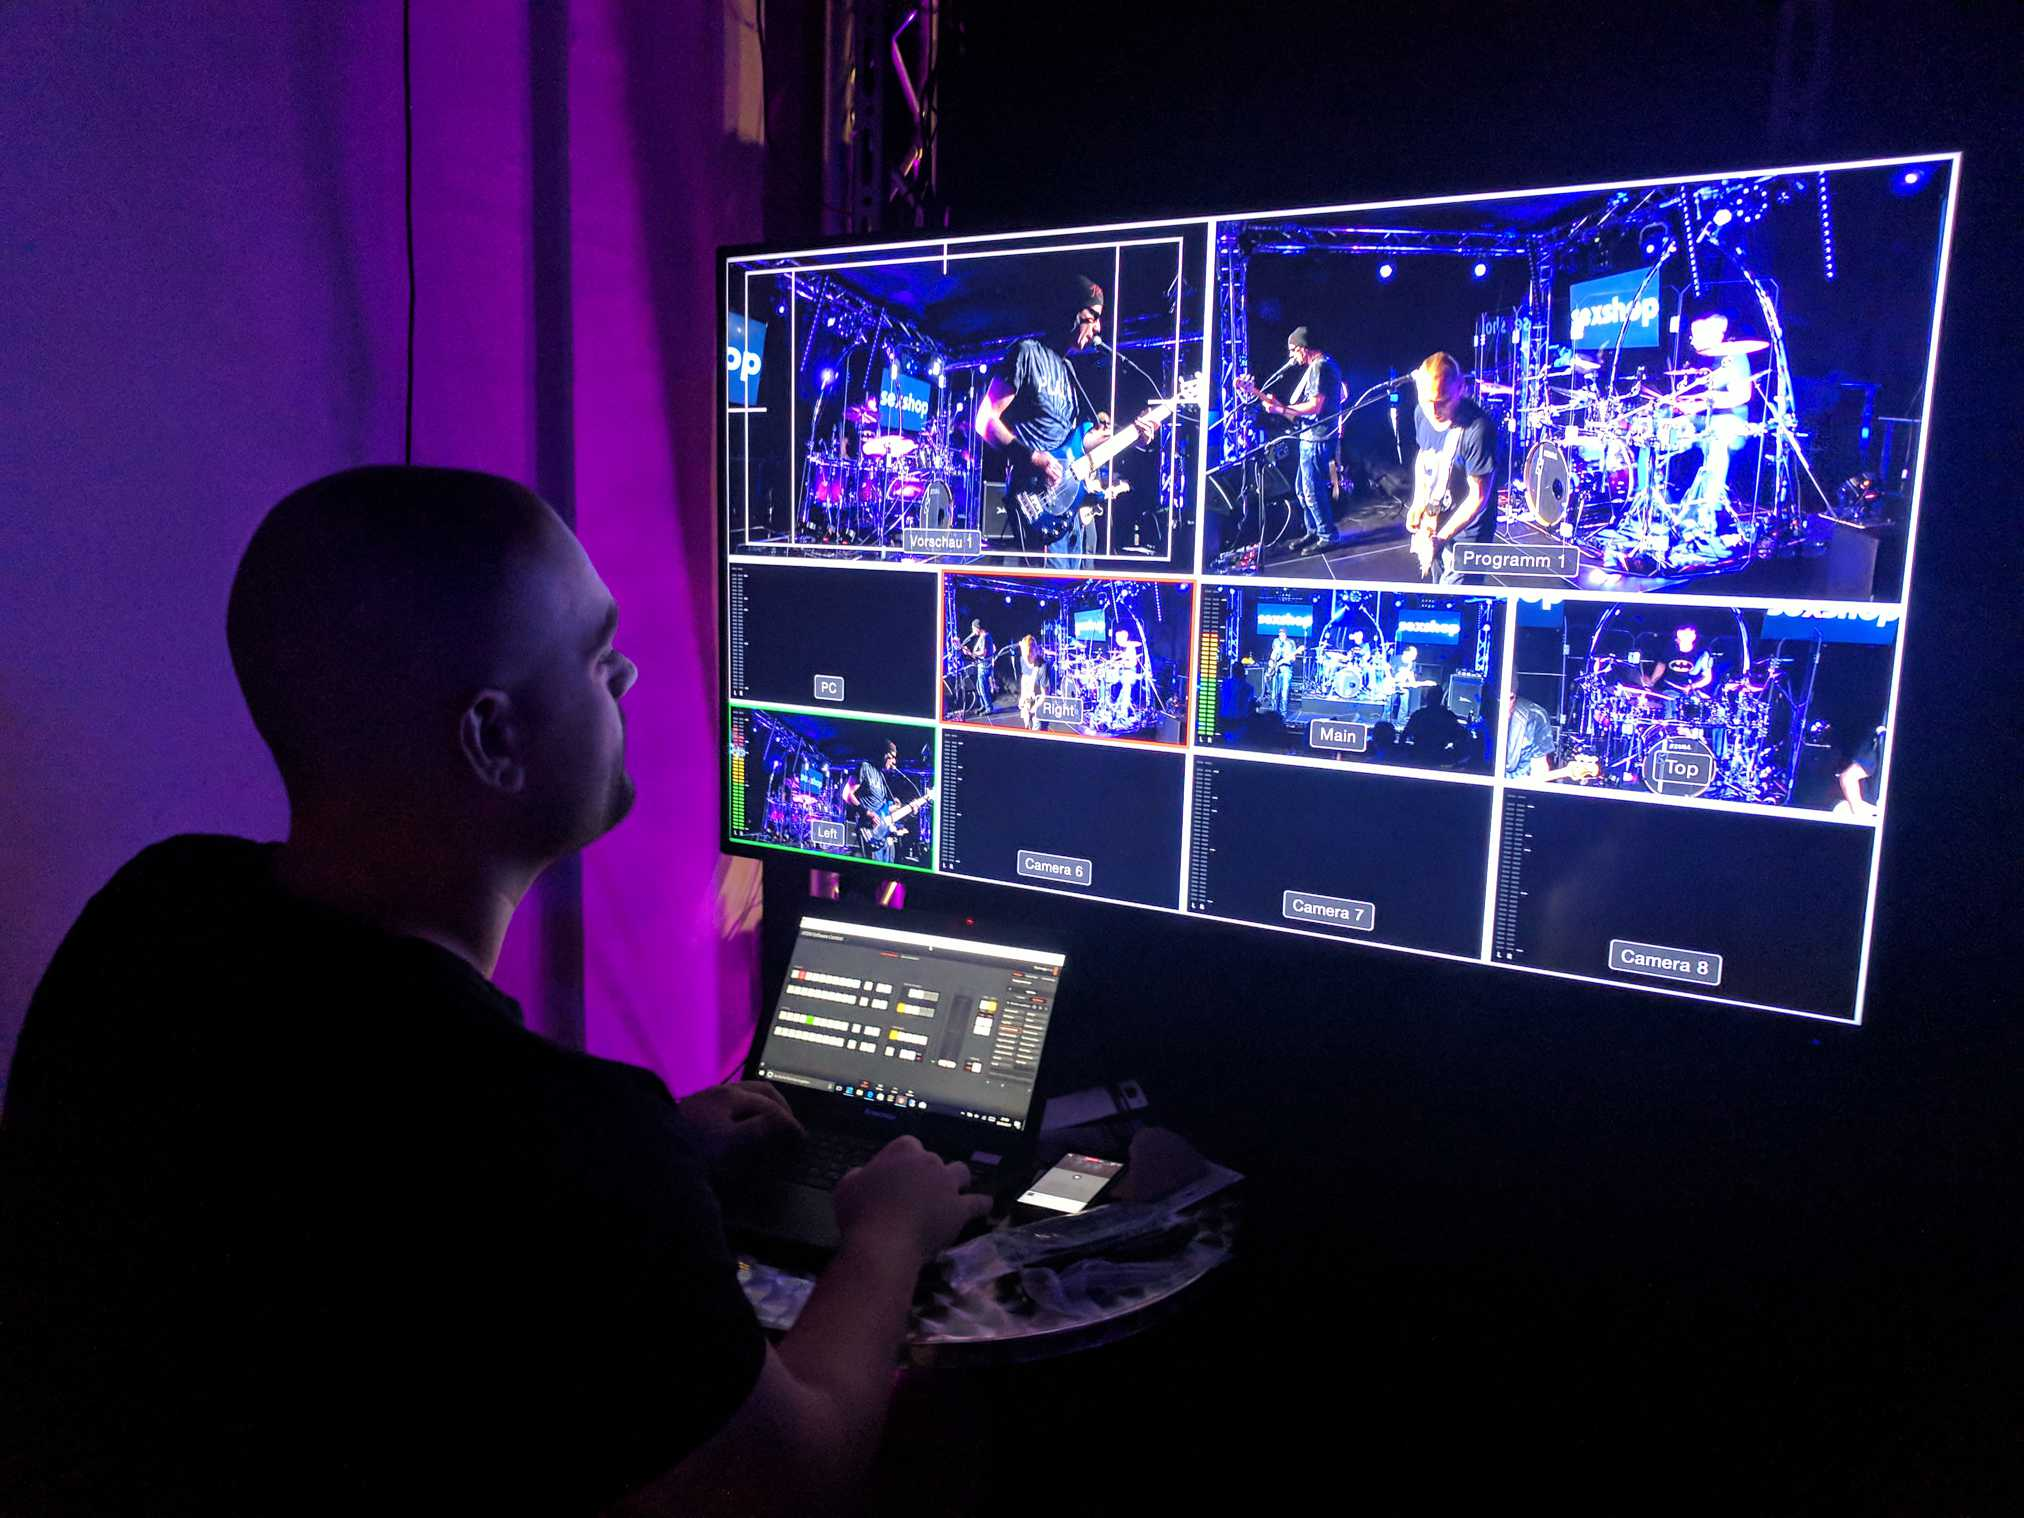 Broadcast Studio-Technik für Musikvideo und Live Streaming